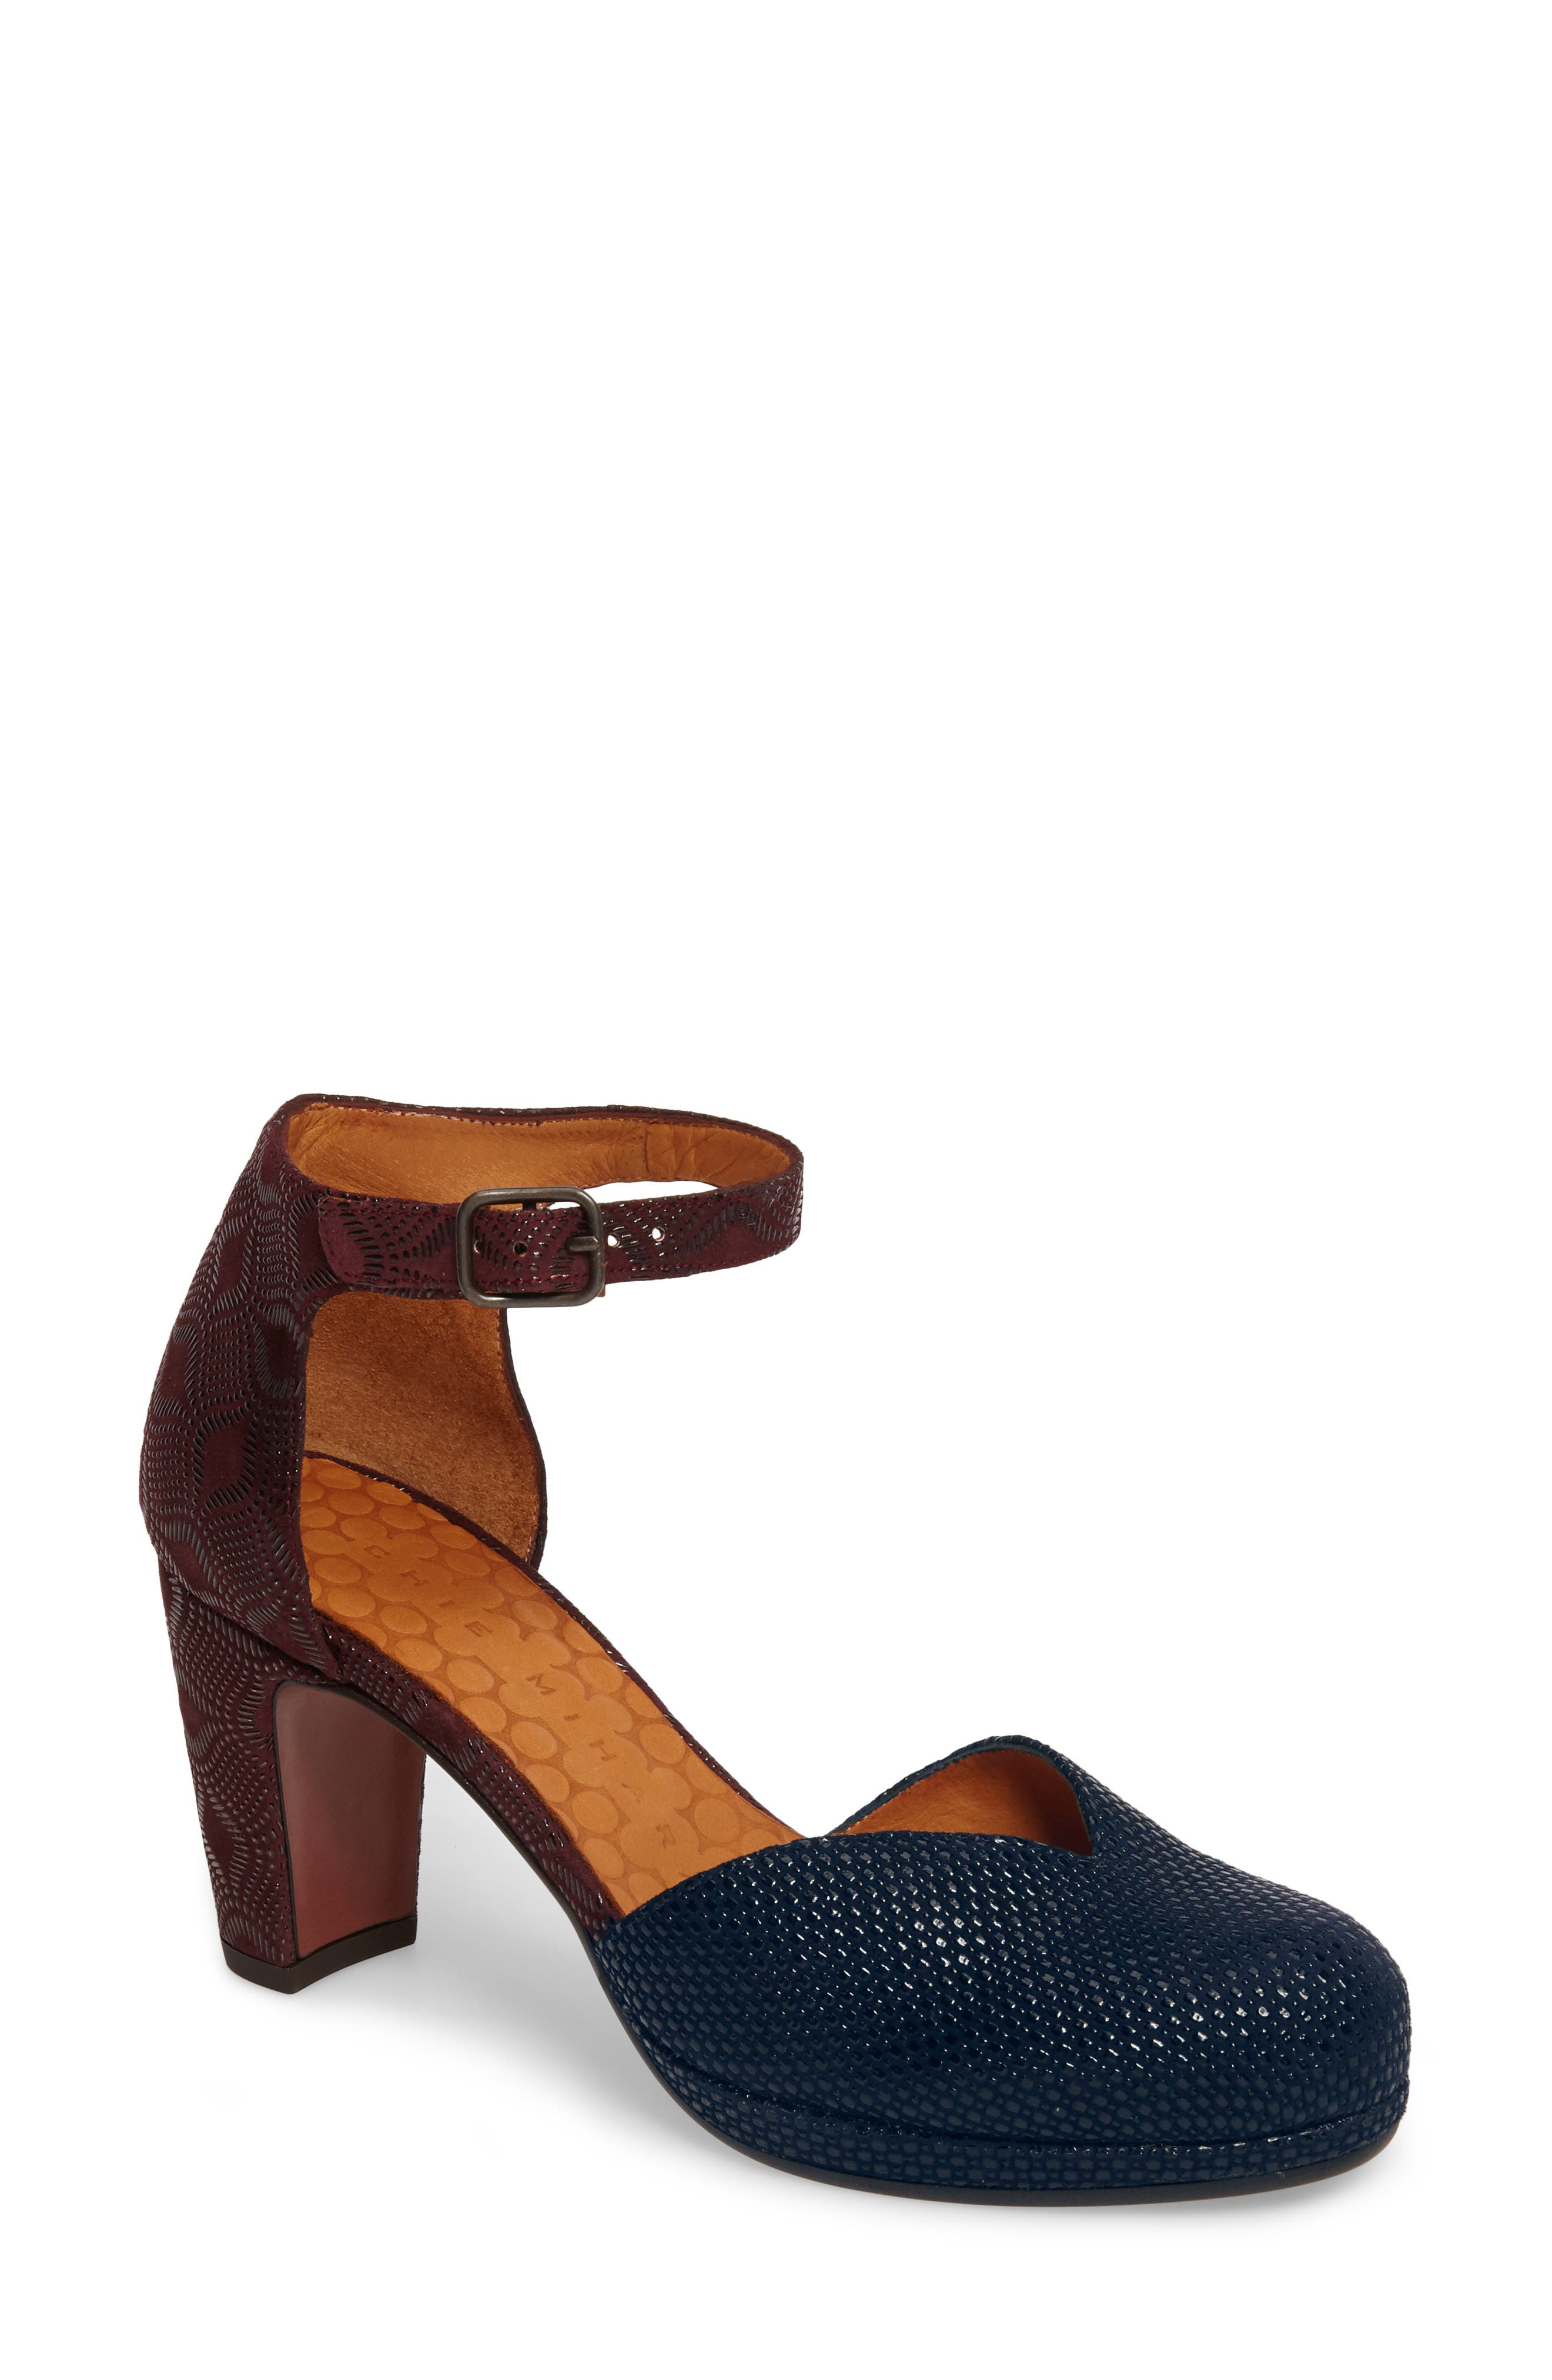 Alternate Image 1 Selected - Chie Mihara Maho d'Orsay Ankle Strap Pump (Women)